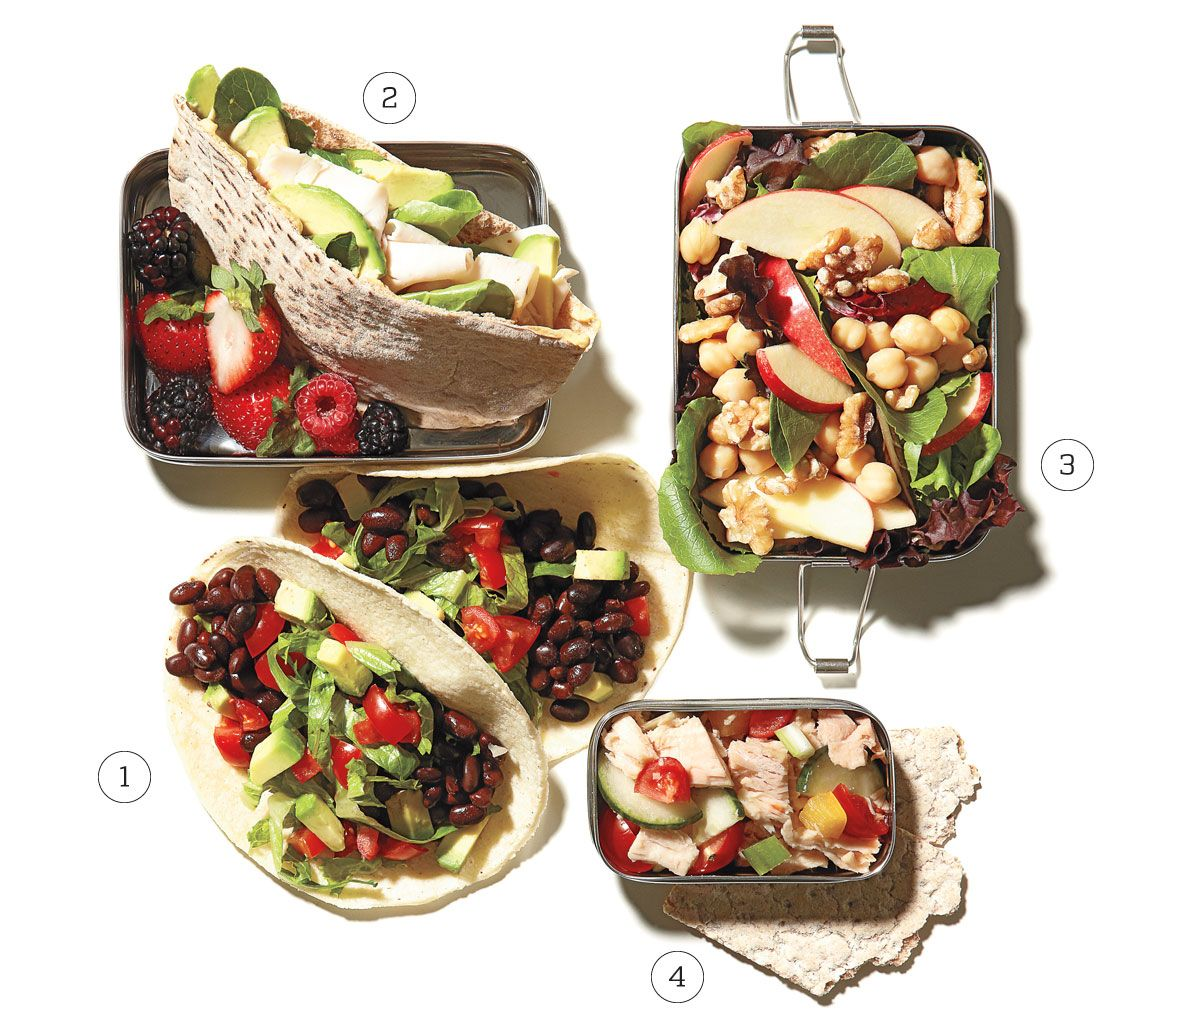 Lori zaninis dietitian for tone it up lunch ideas this was in lori zaninis dietitian for tone it up lunch ideas this was in mens fitnesshealth forumfinder Choice Image